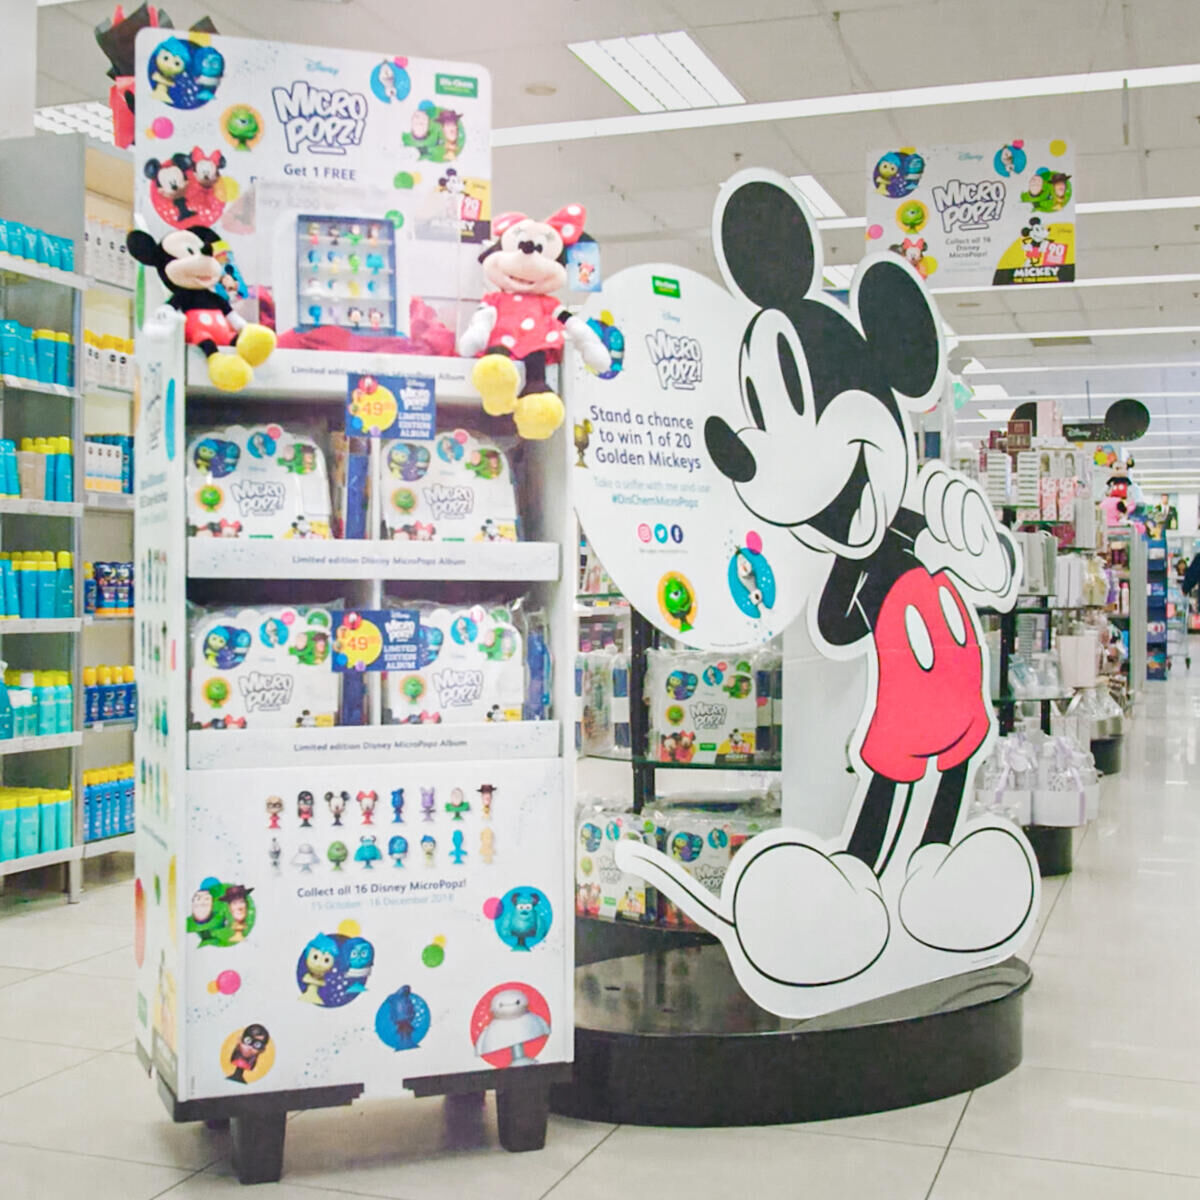 Motivate staff to improve in-store execution